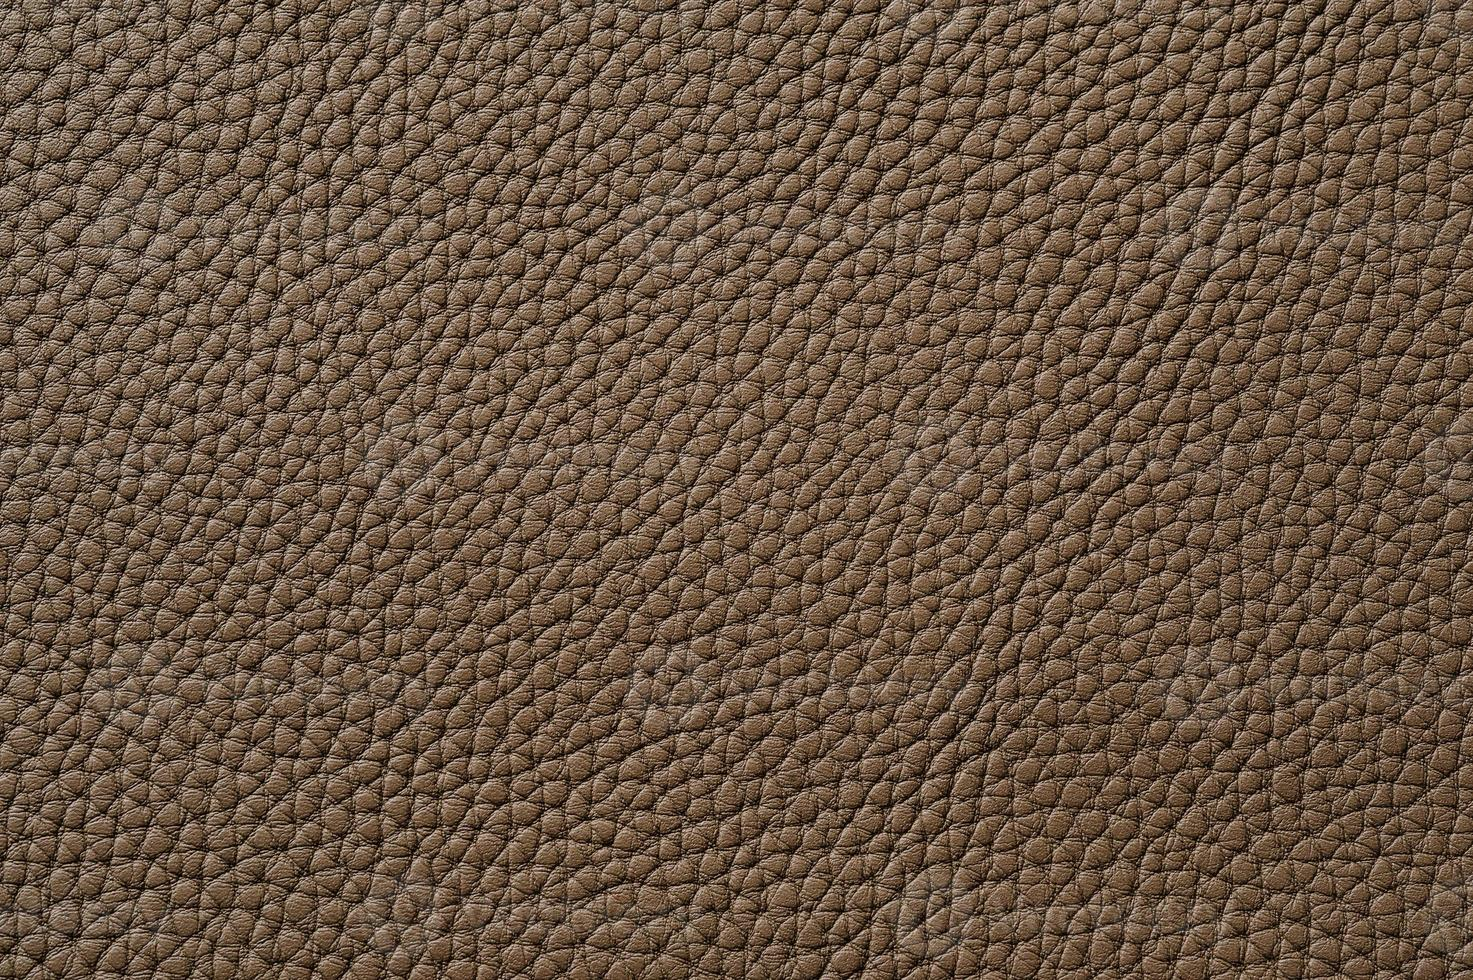 Closeup of seamless brown leather texture photo